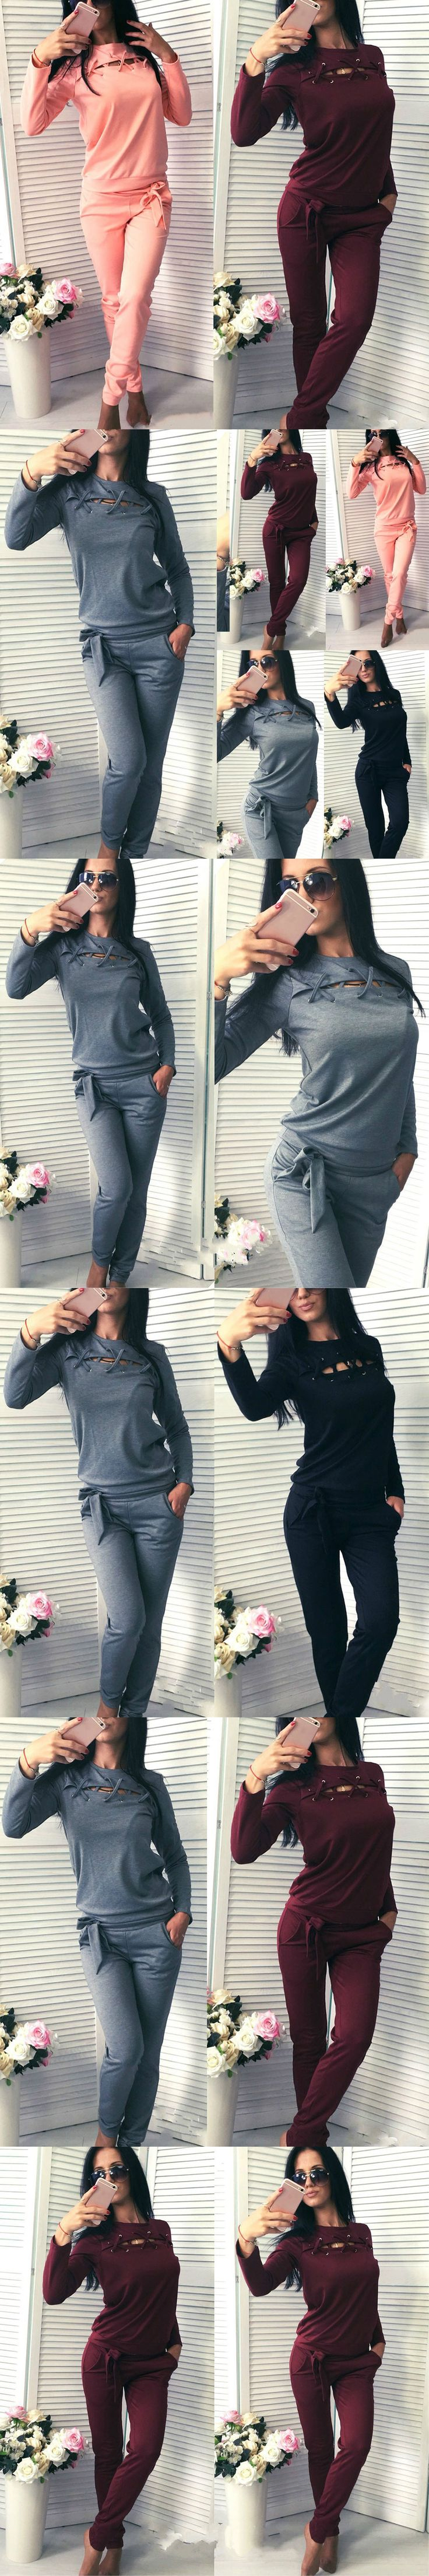 Fashion Spring Autumn Women 2 Piece Set Solid Color Long Sleeve Tops + Pants Bandage Ladies Girls Casual Sportswear FS99